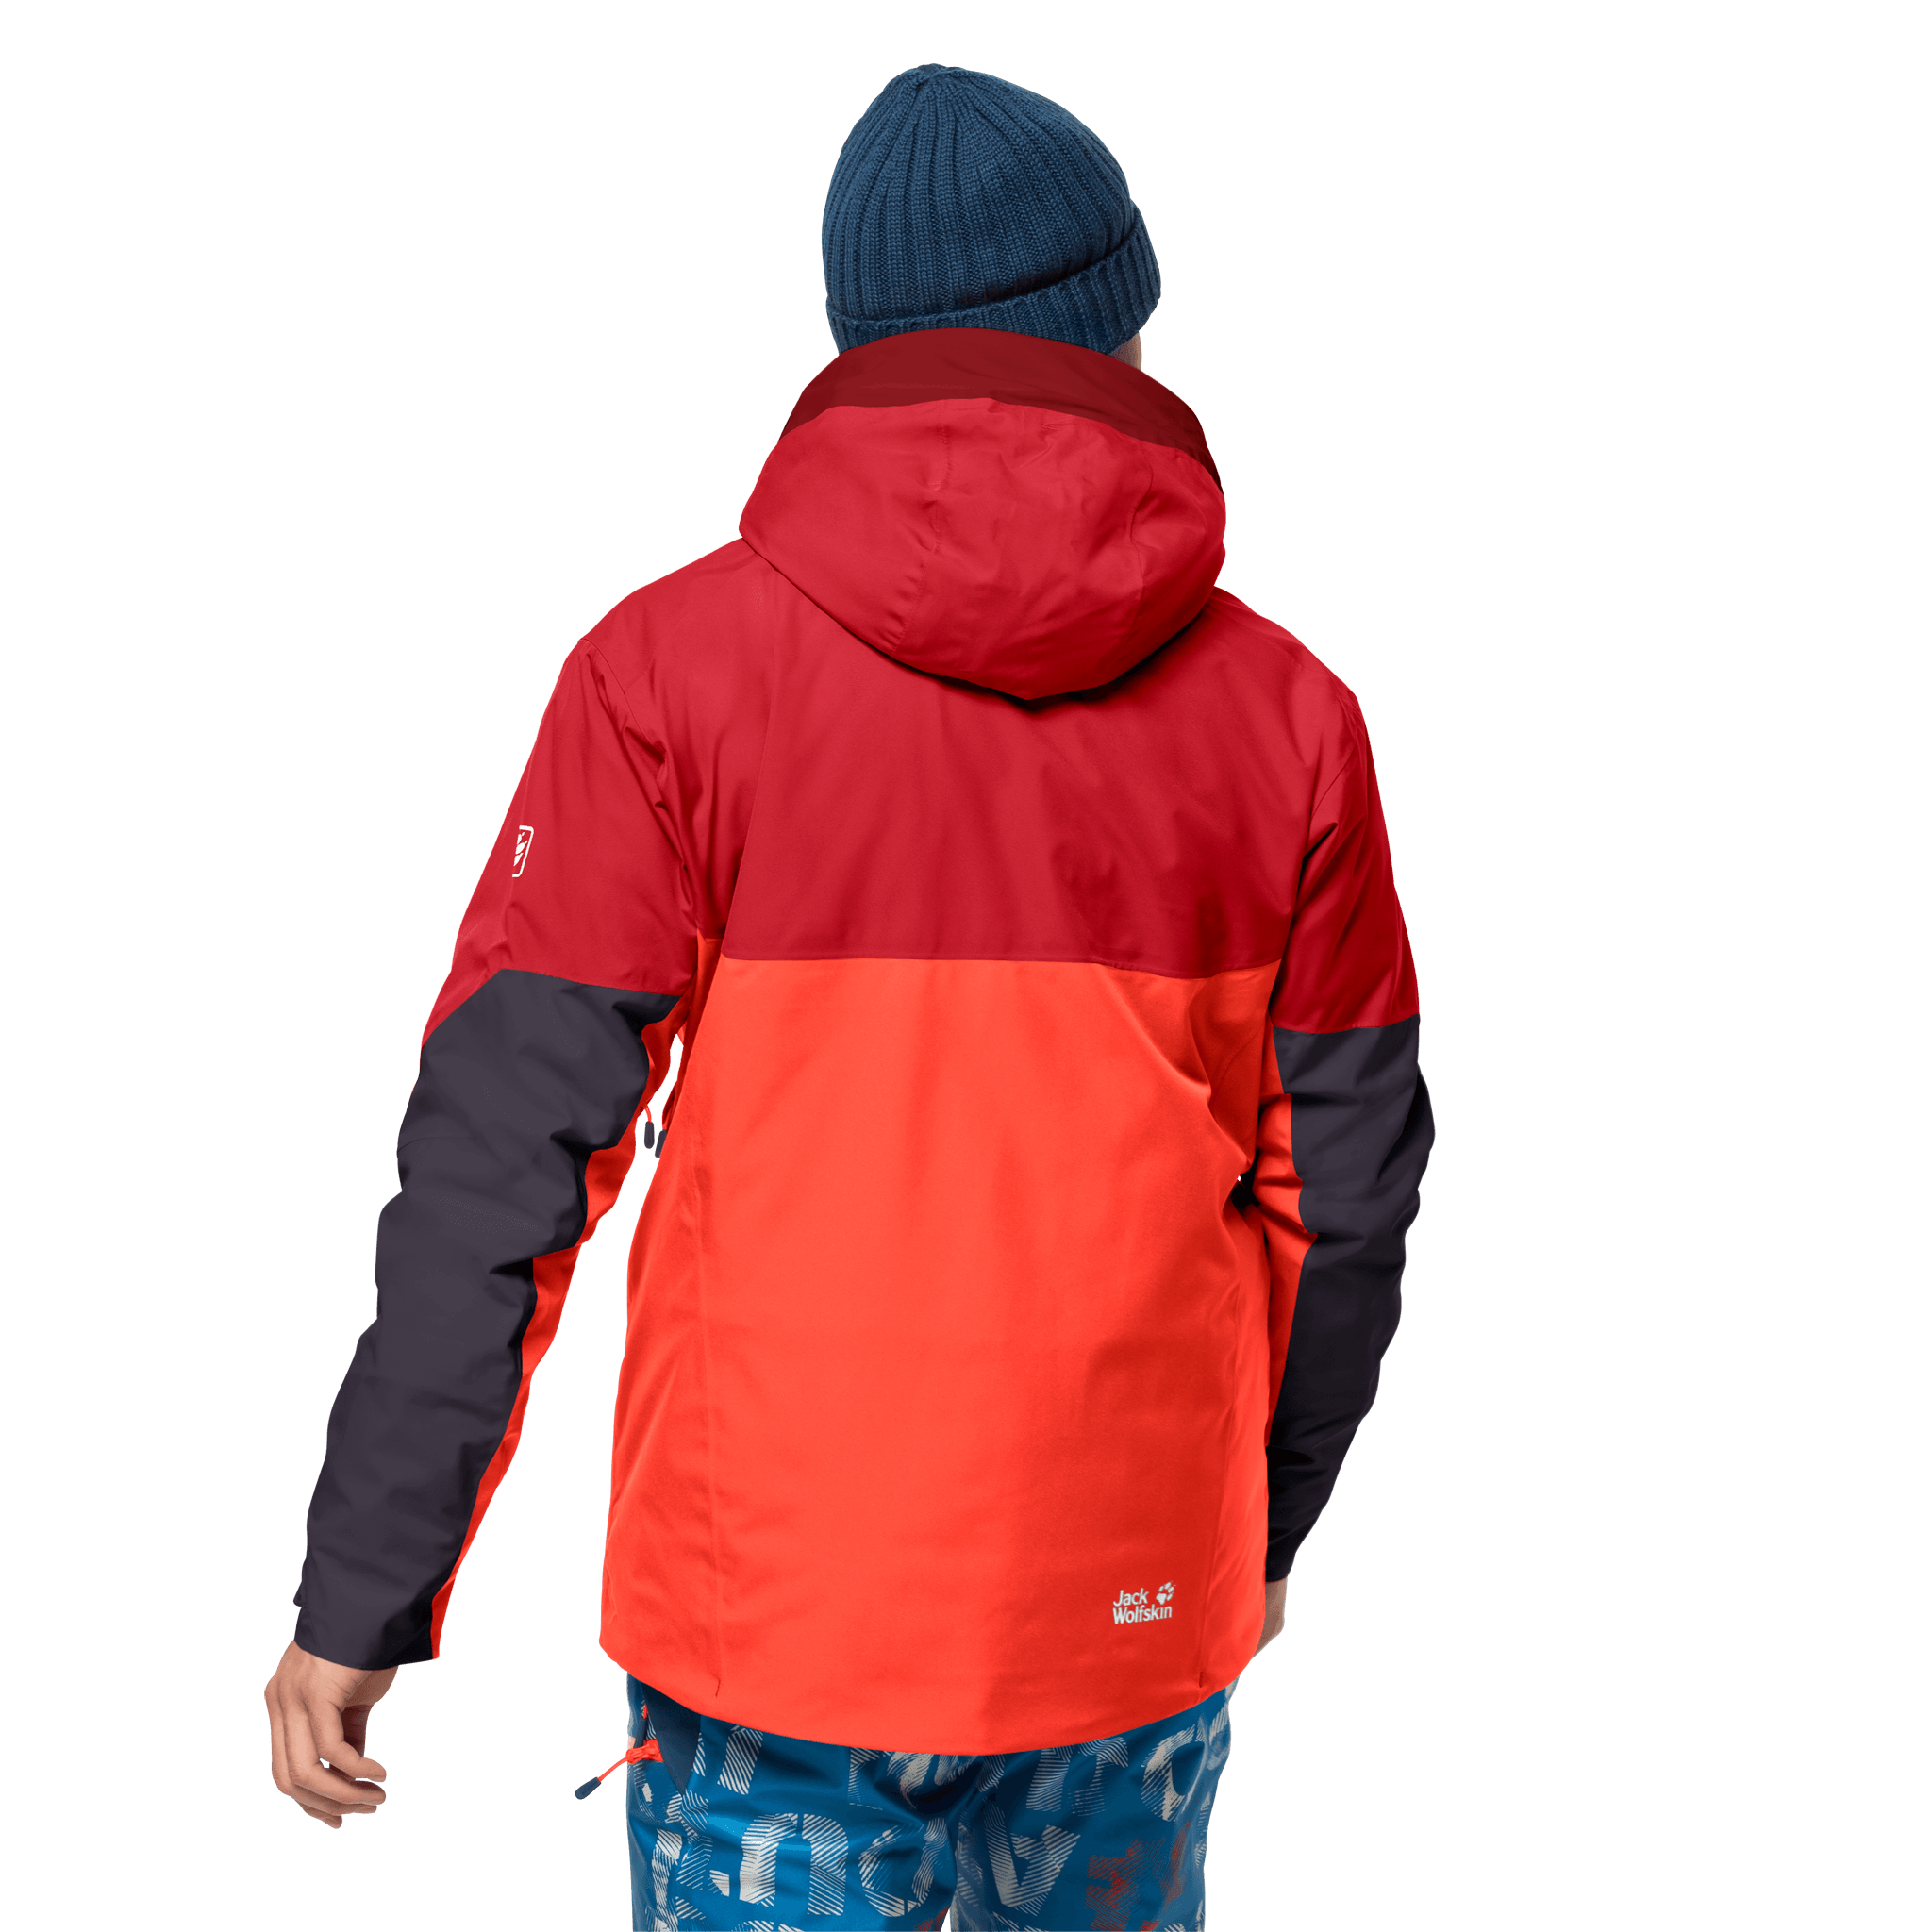 Red Fire Ski Jacket Men